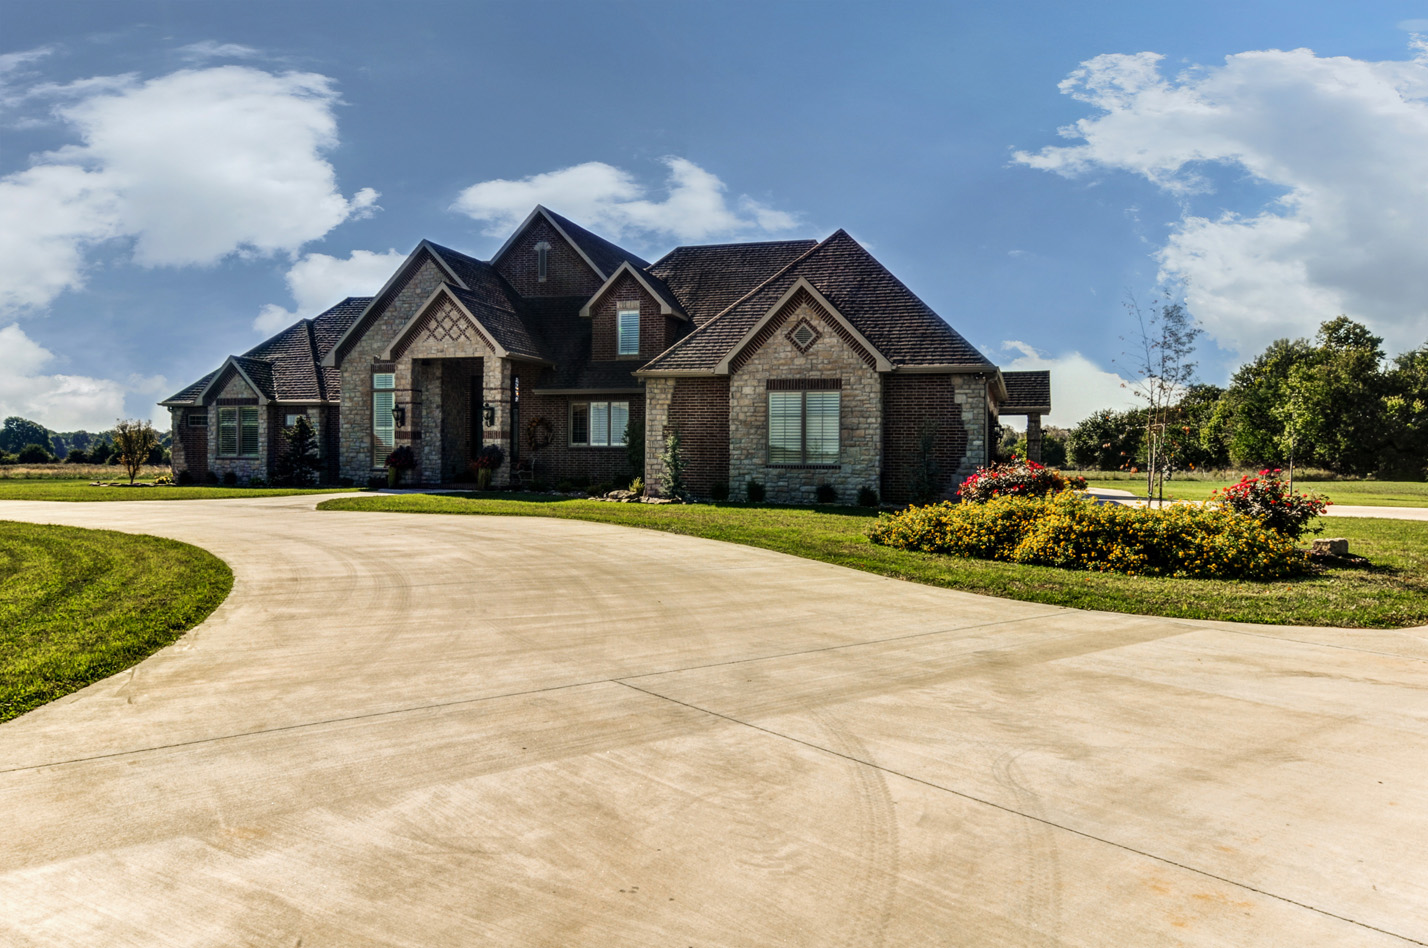 built-by-brett-custom-home-springfield-mo-13735-lawrence-2100-exterior-002.jpg